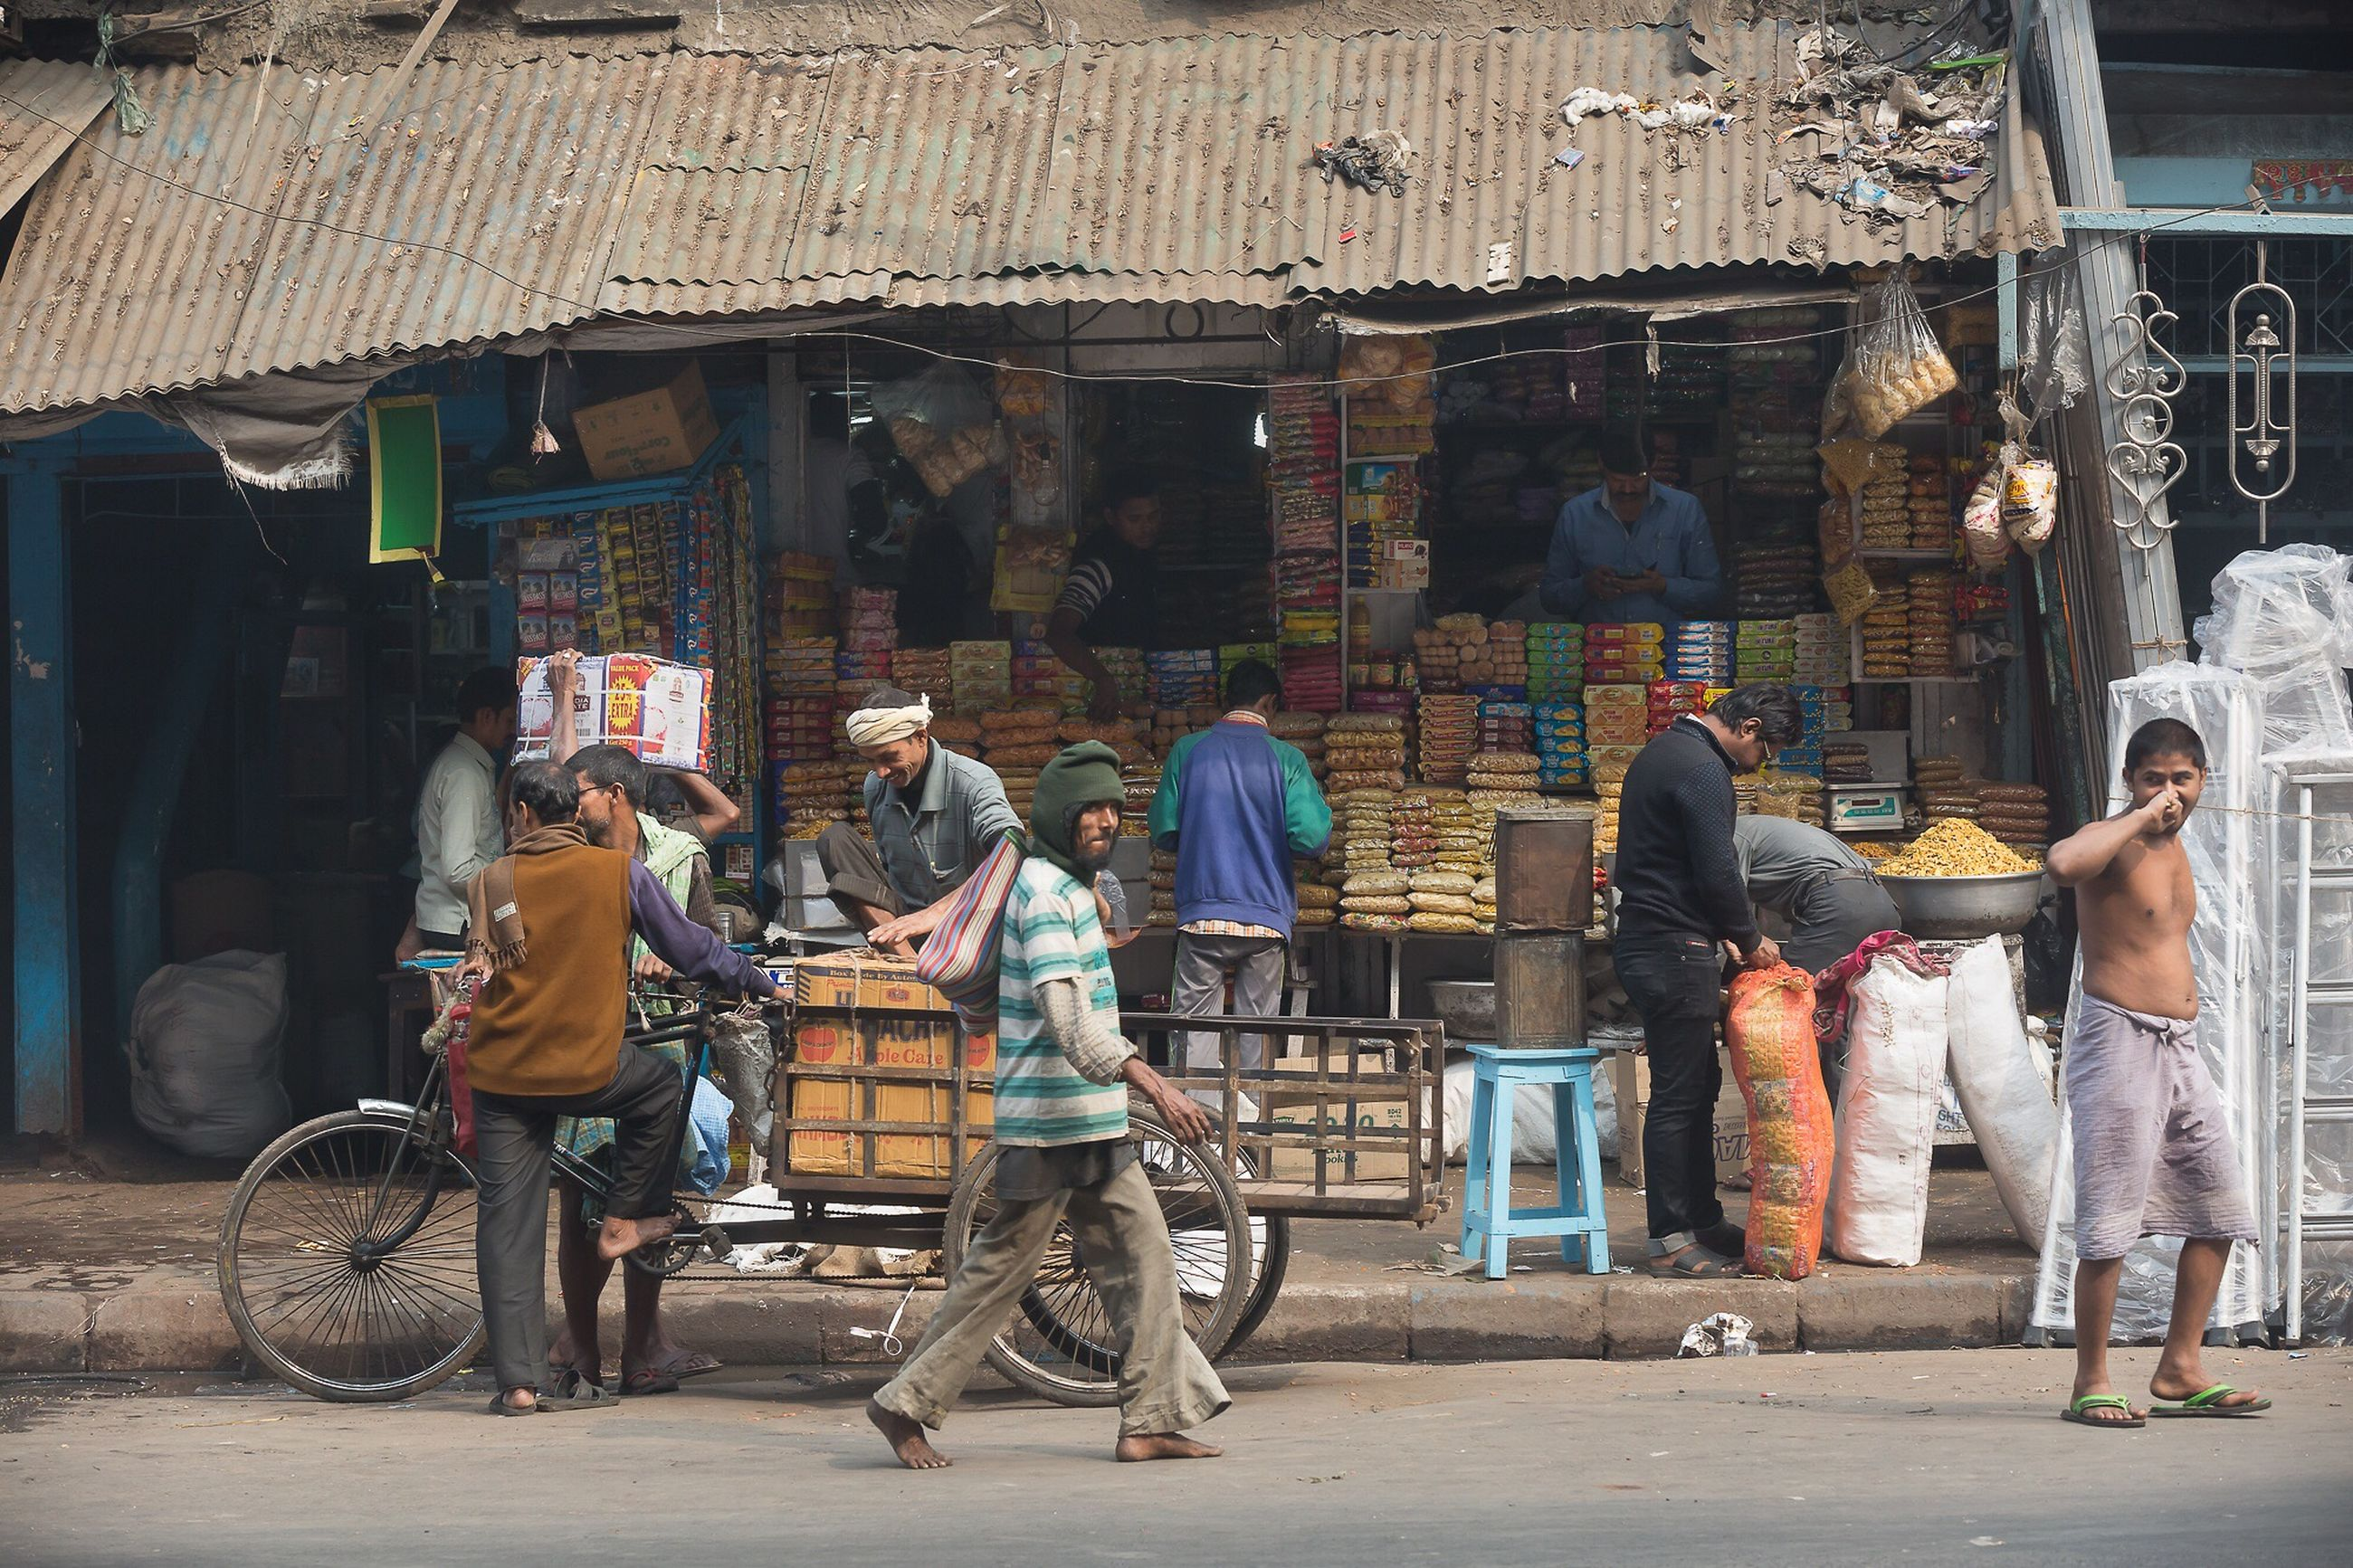 people, building exterior, architecture, built structure, lifestyles, street, full length, casual clothing, market, leisure activity, city, occupation, rear view, working, walking, outdoors, market stall